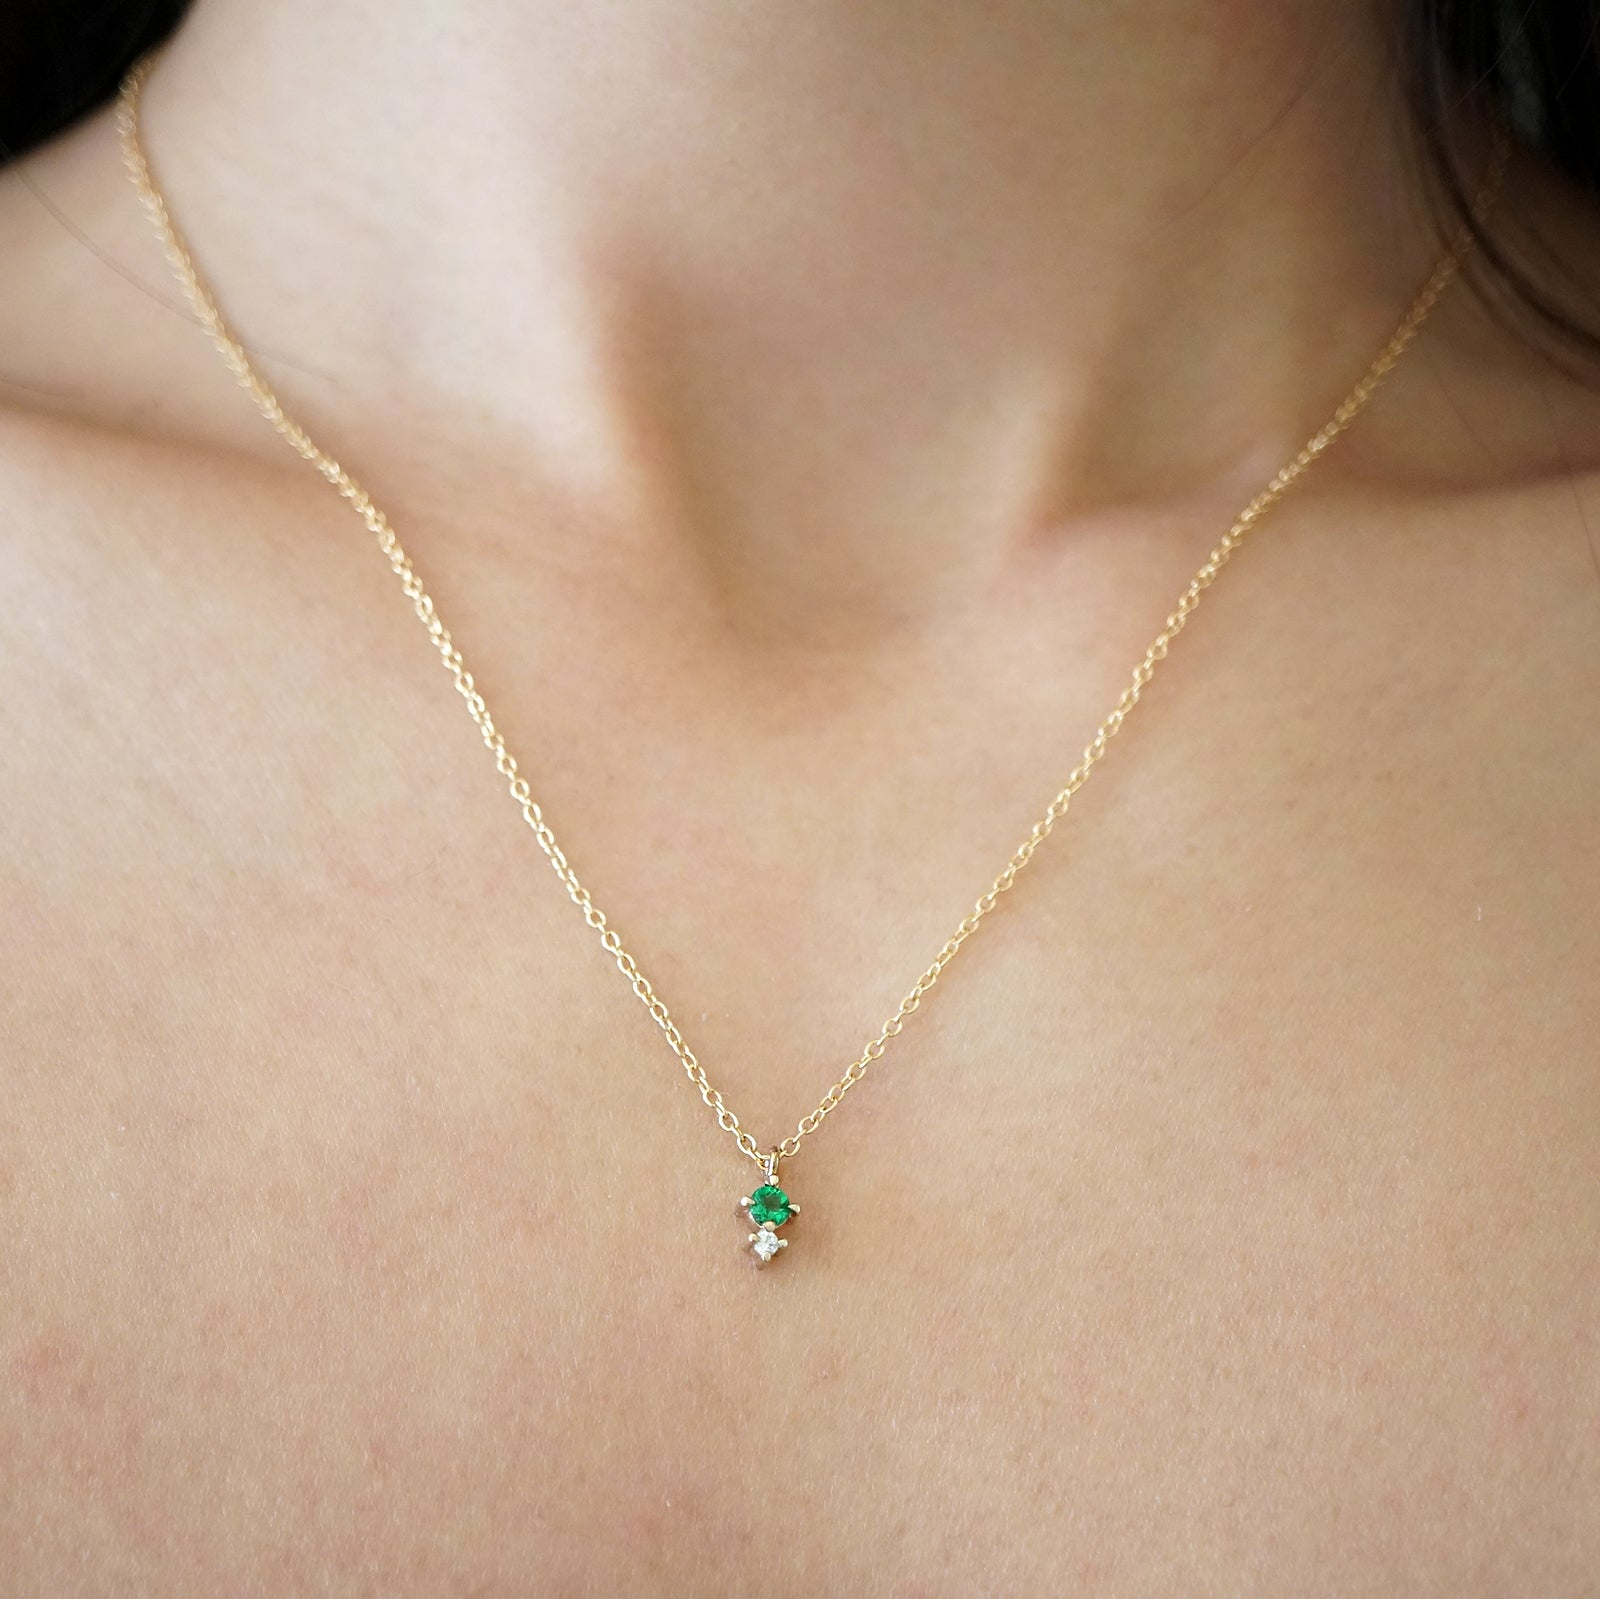 Petite Forest Emerald Necklace - Tippy Taste Jewelry